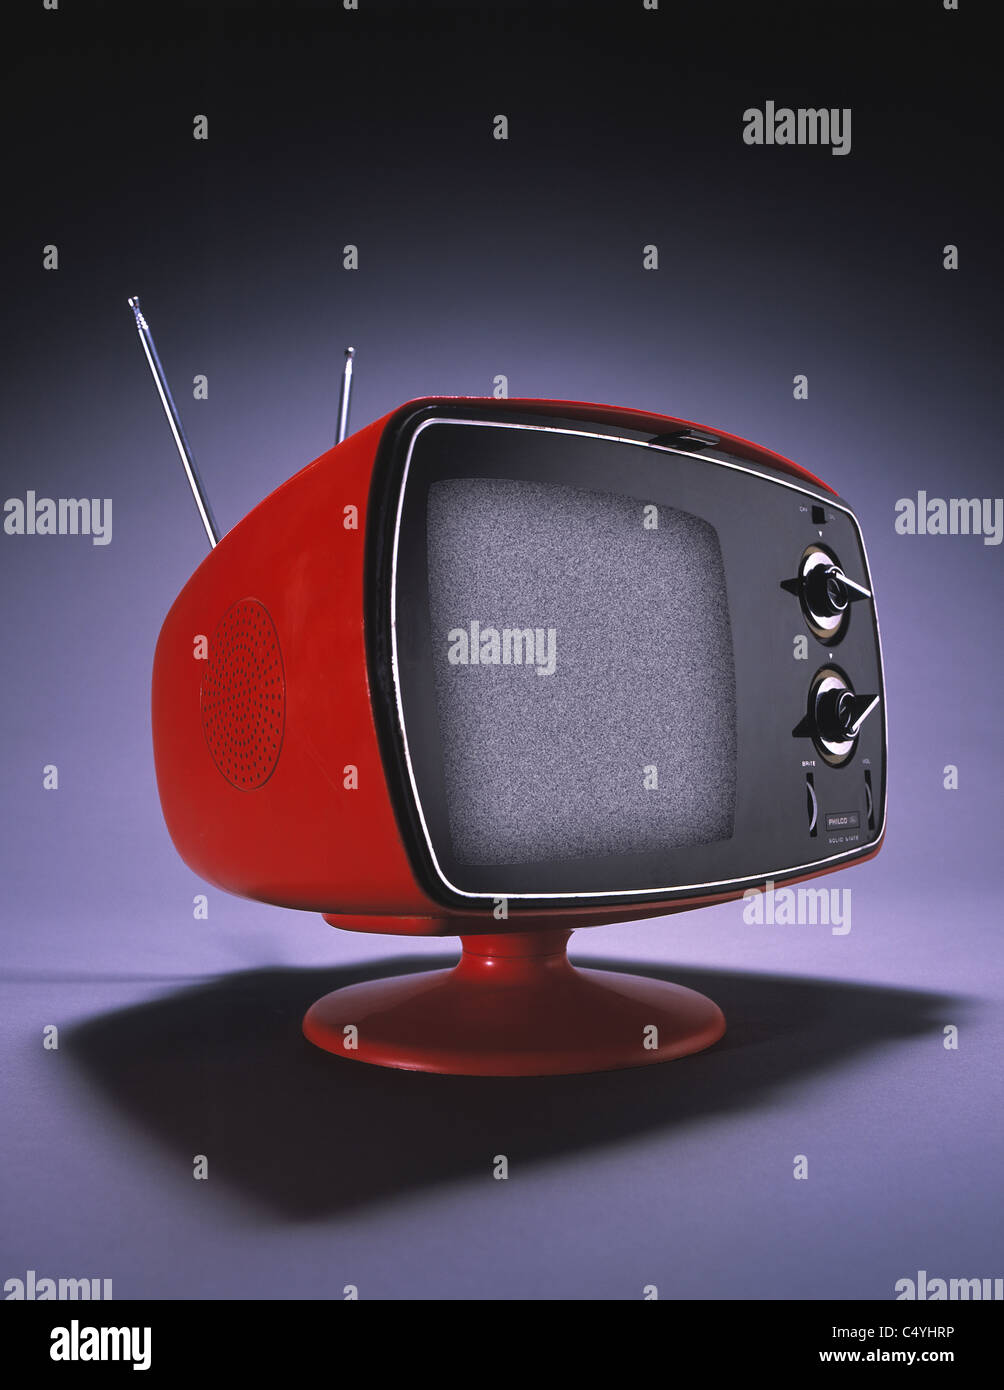 A small orange television set with an antenna and large dials. - Stock Image